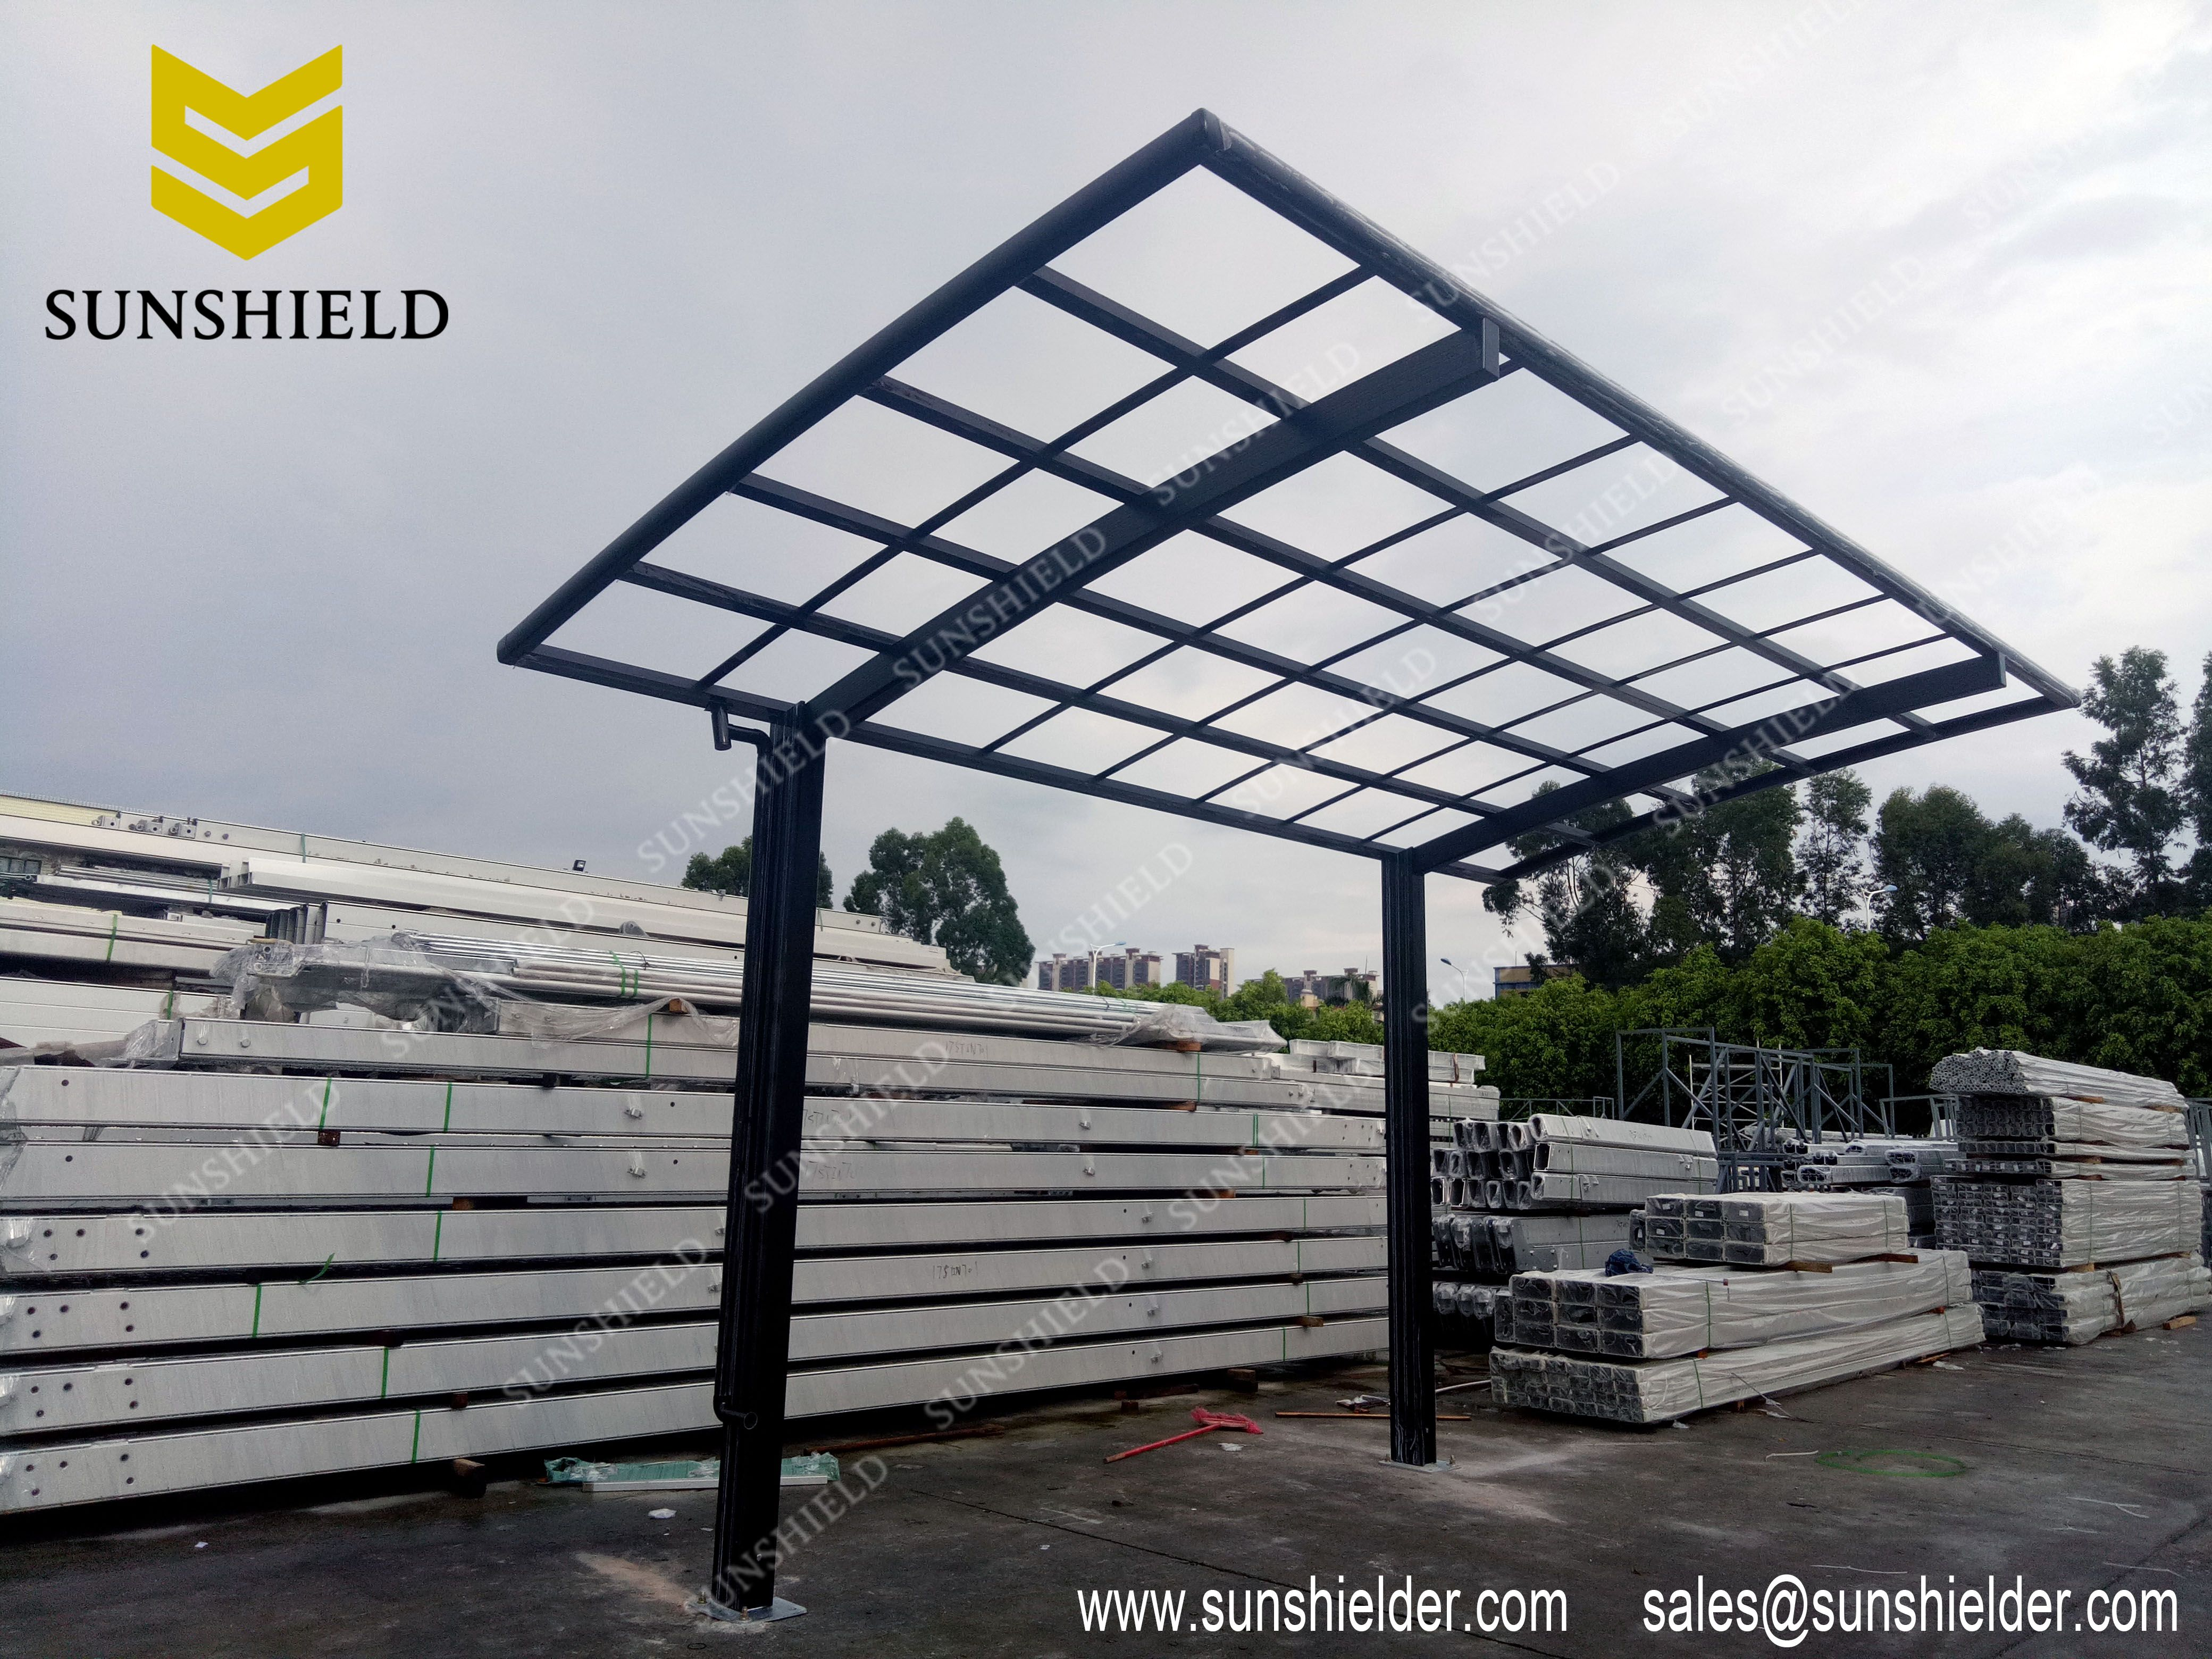 Black Arched Aluminum Polycarbonate Carport For 1 Car / Patio Cover/  Driveway Shade / 18.4*9.2*8u0027 / Custom In Size And Colors / 30 Years Lifespan